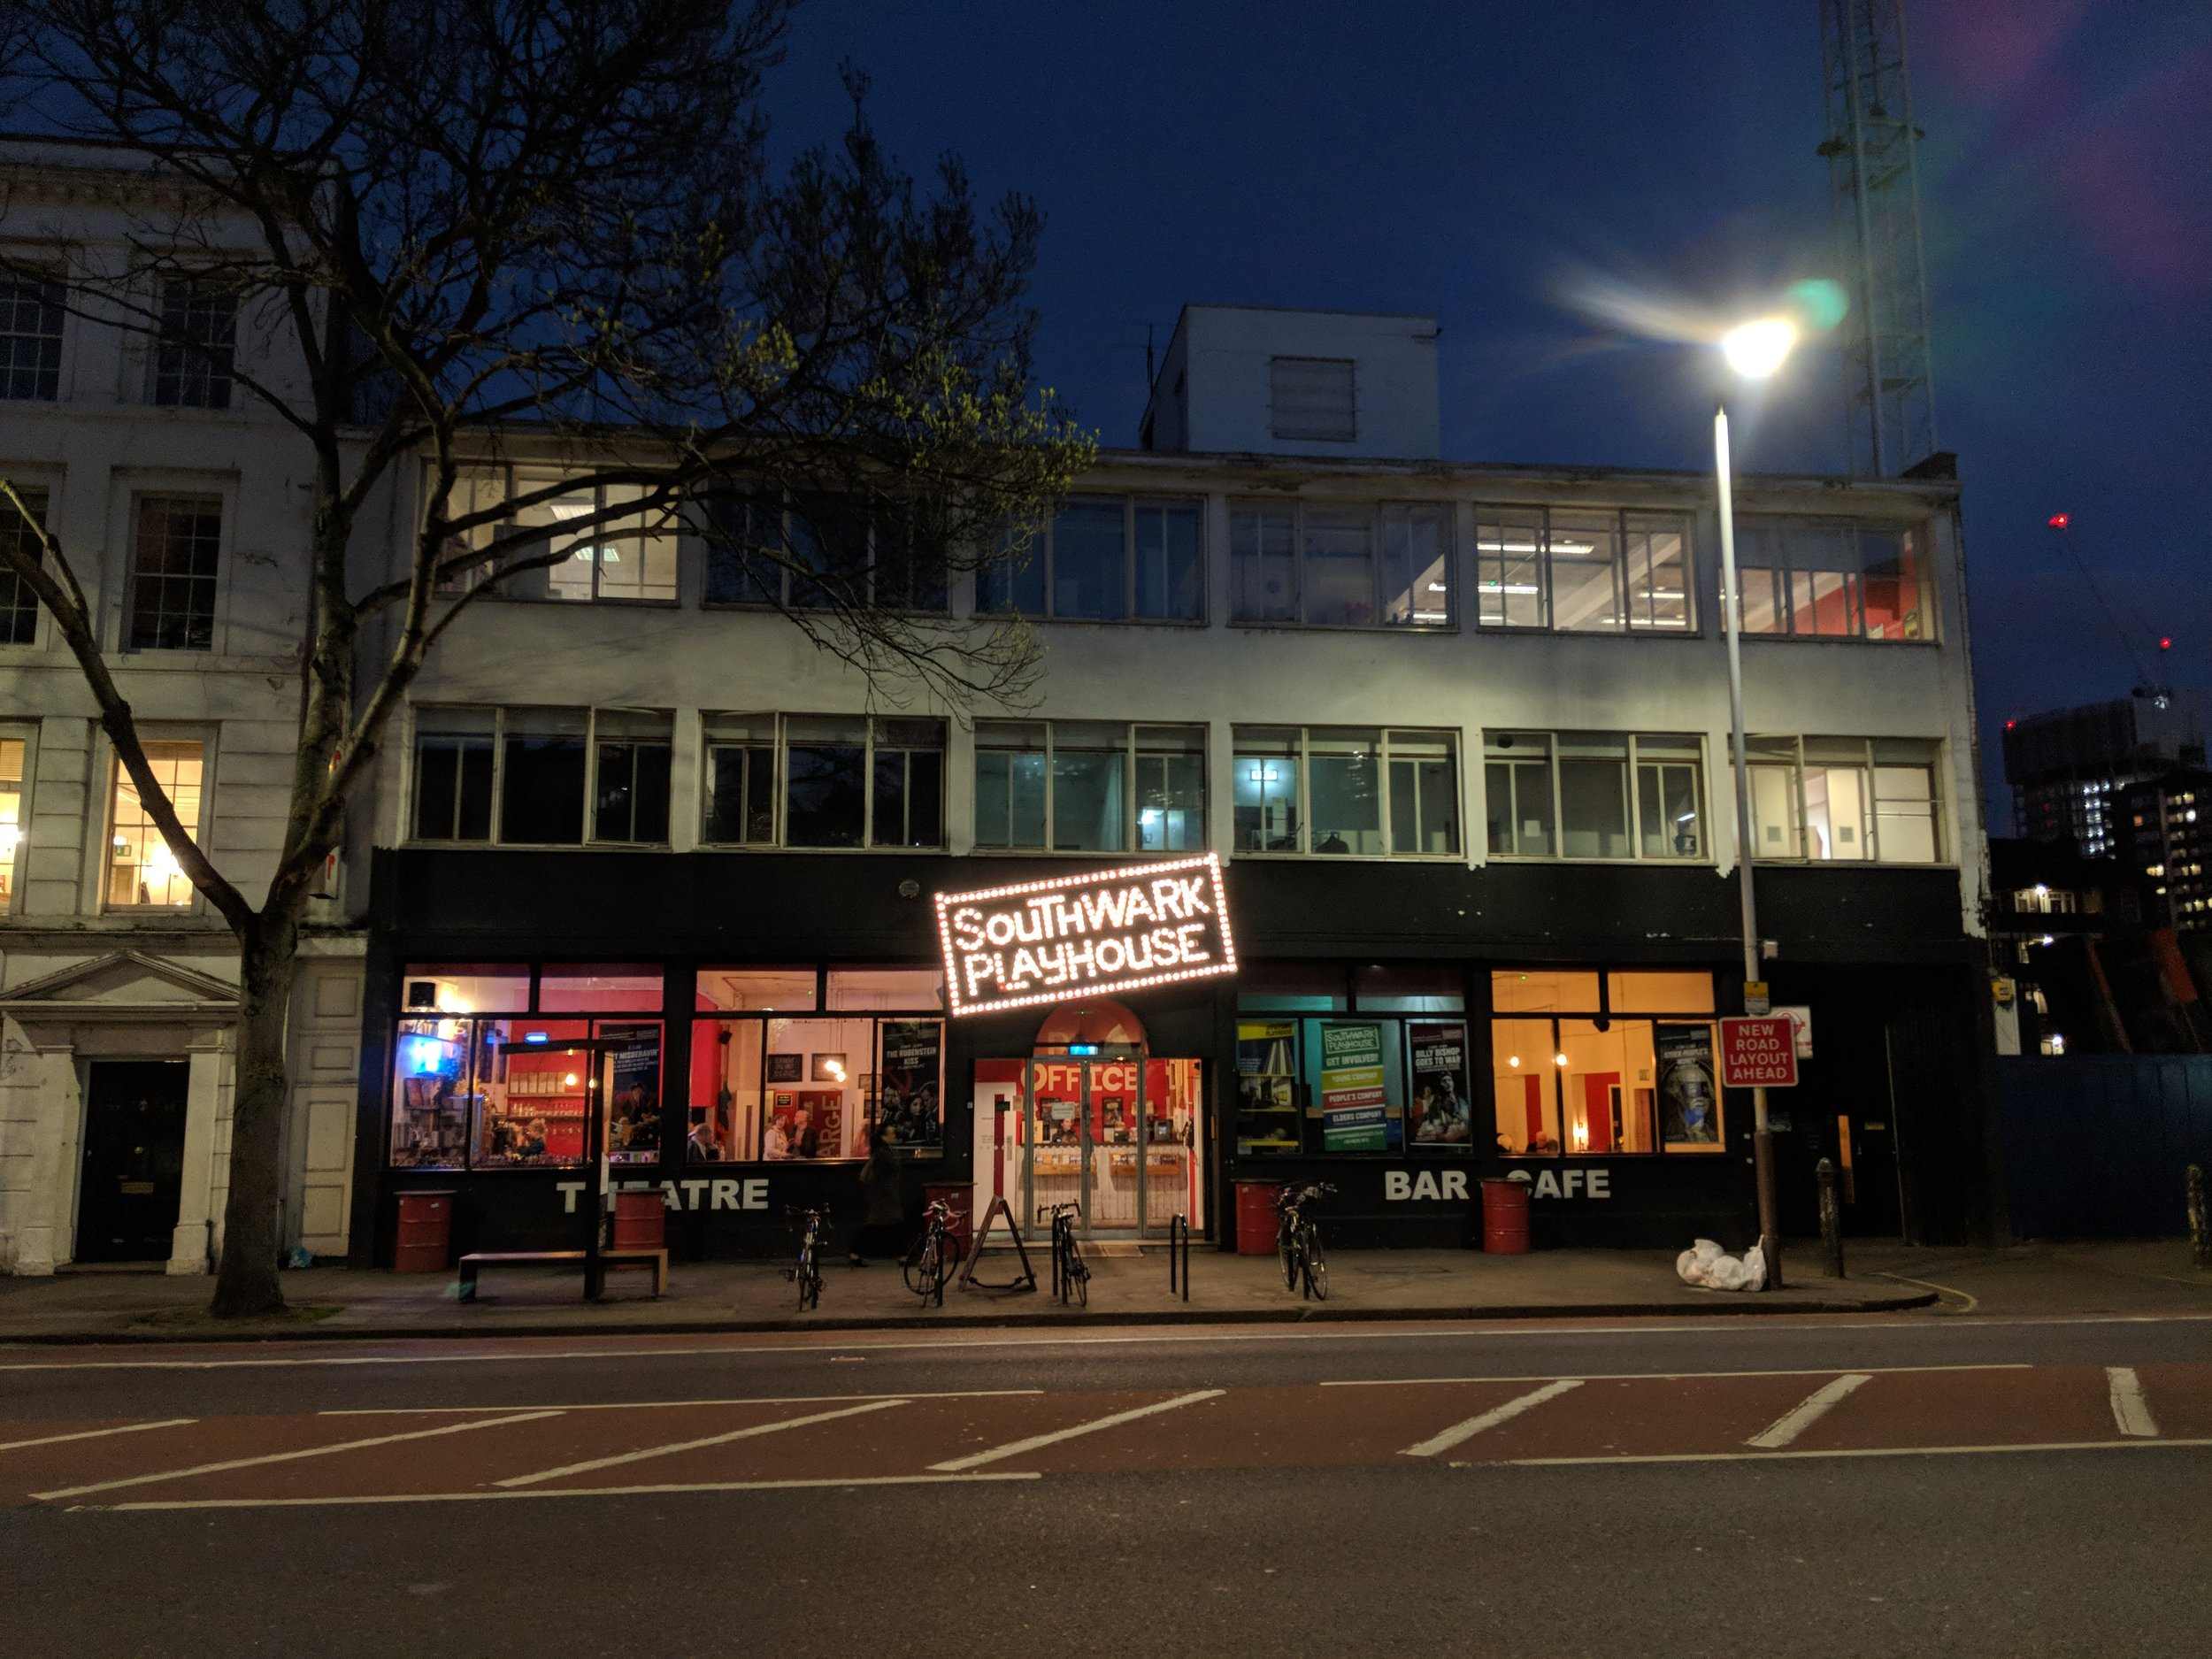 Southwark Playhouse(The Large) - visited 26/03/2019